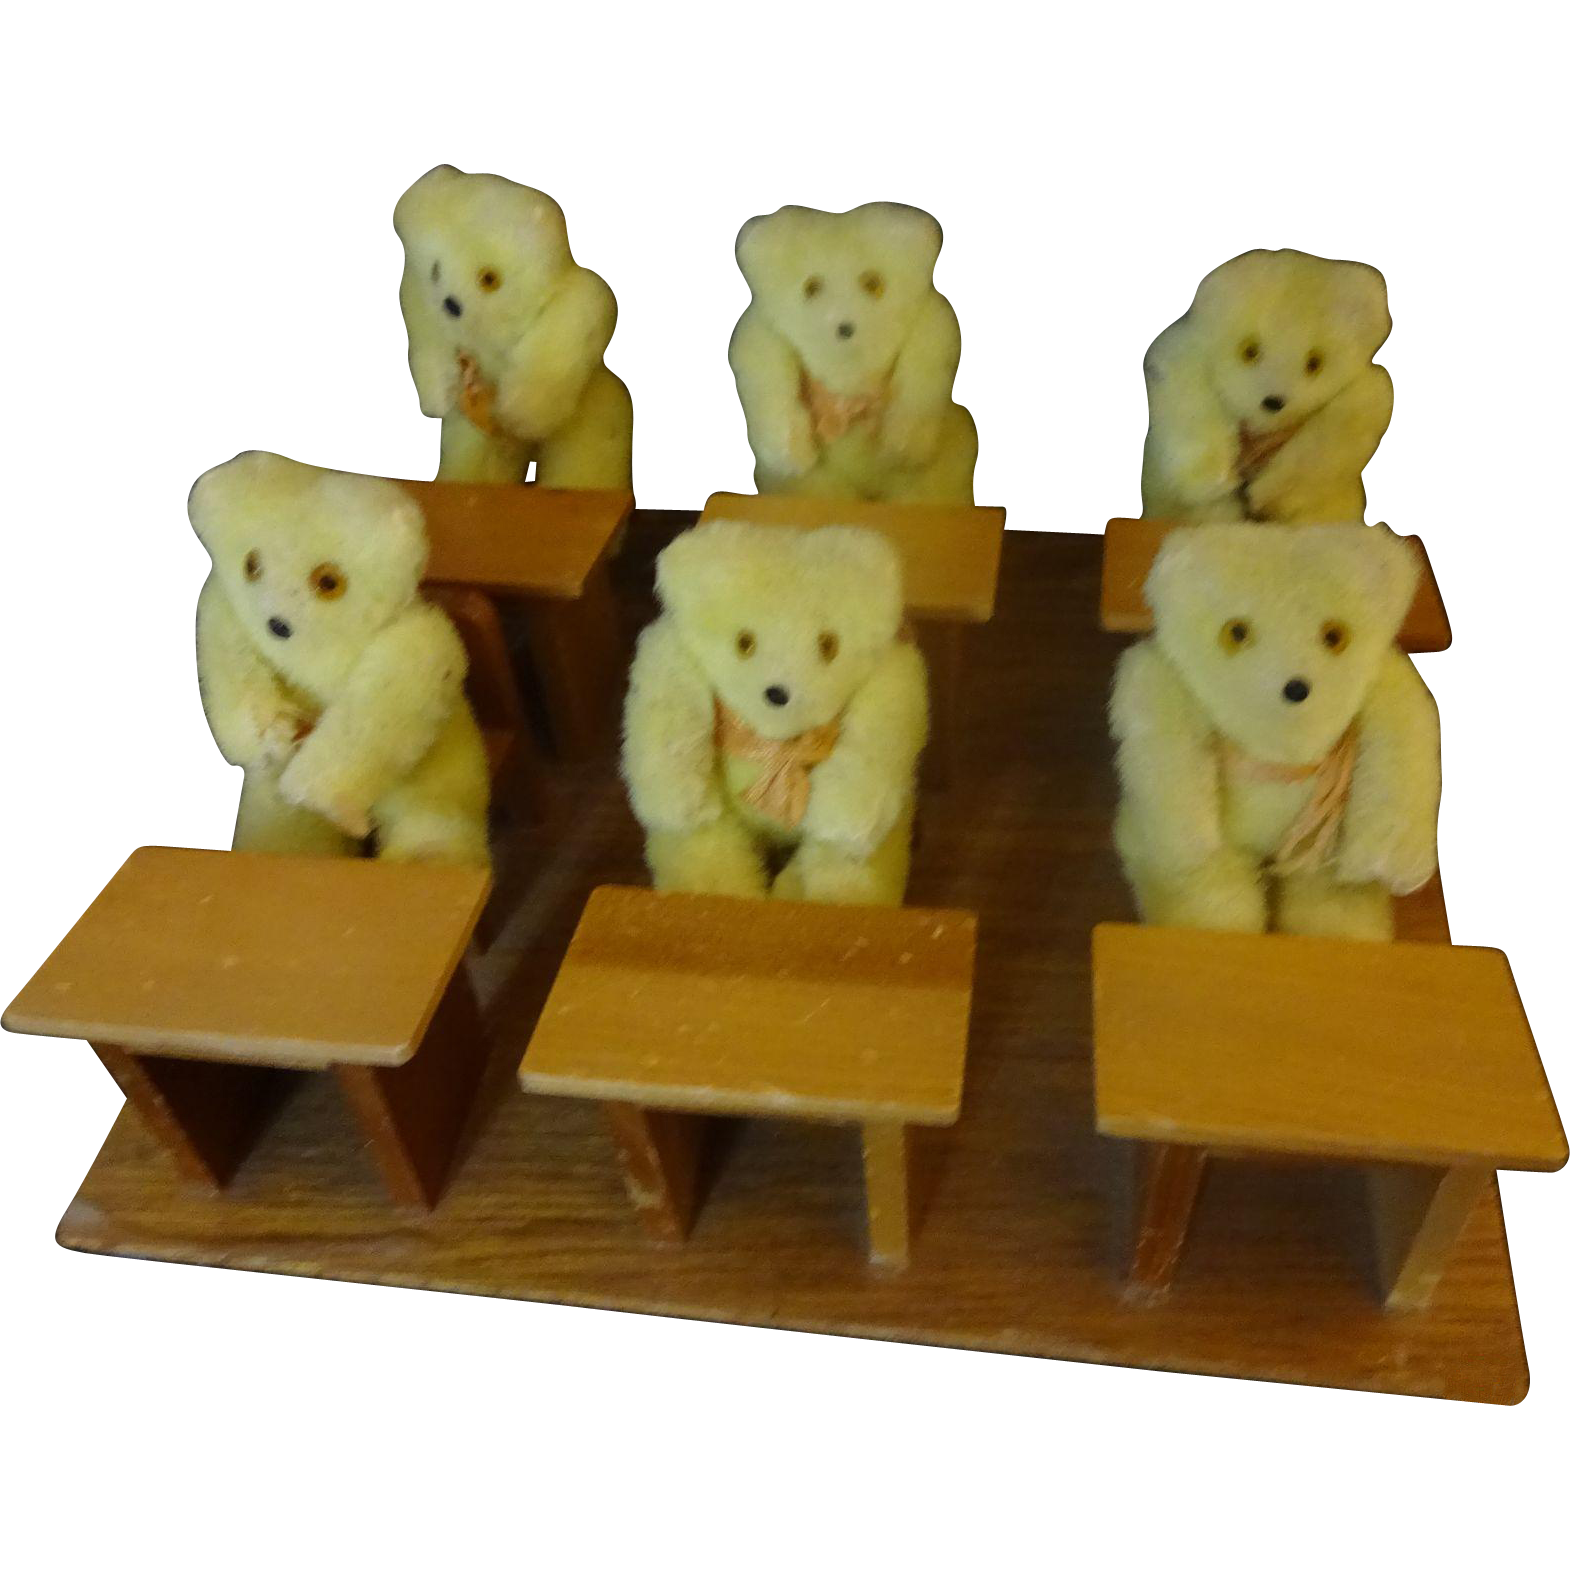 School Room with 6 student Bears and 1 Teacher Bear